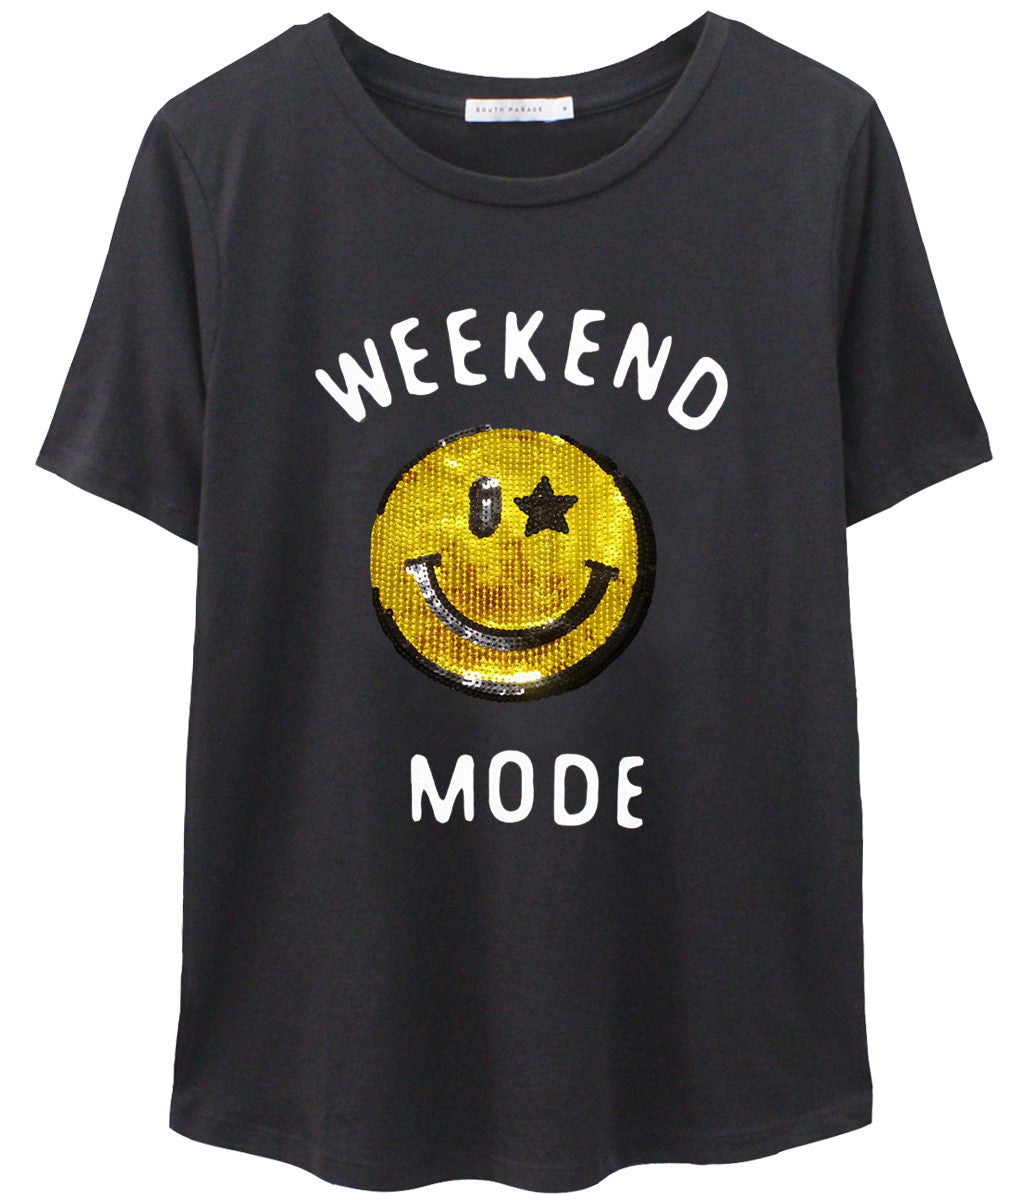 Lola - Loose Tee - Weekend Mode